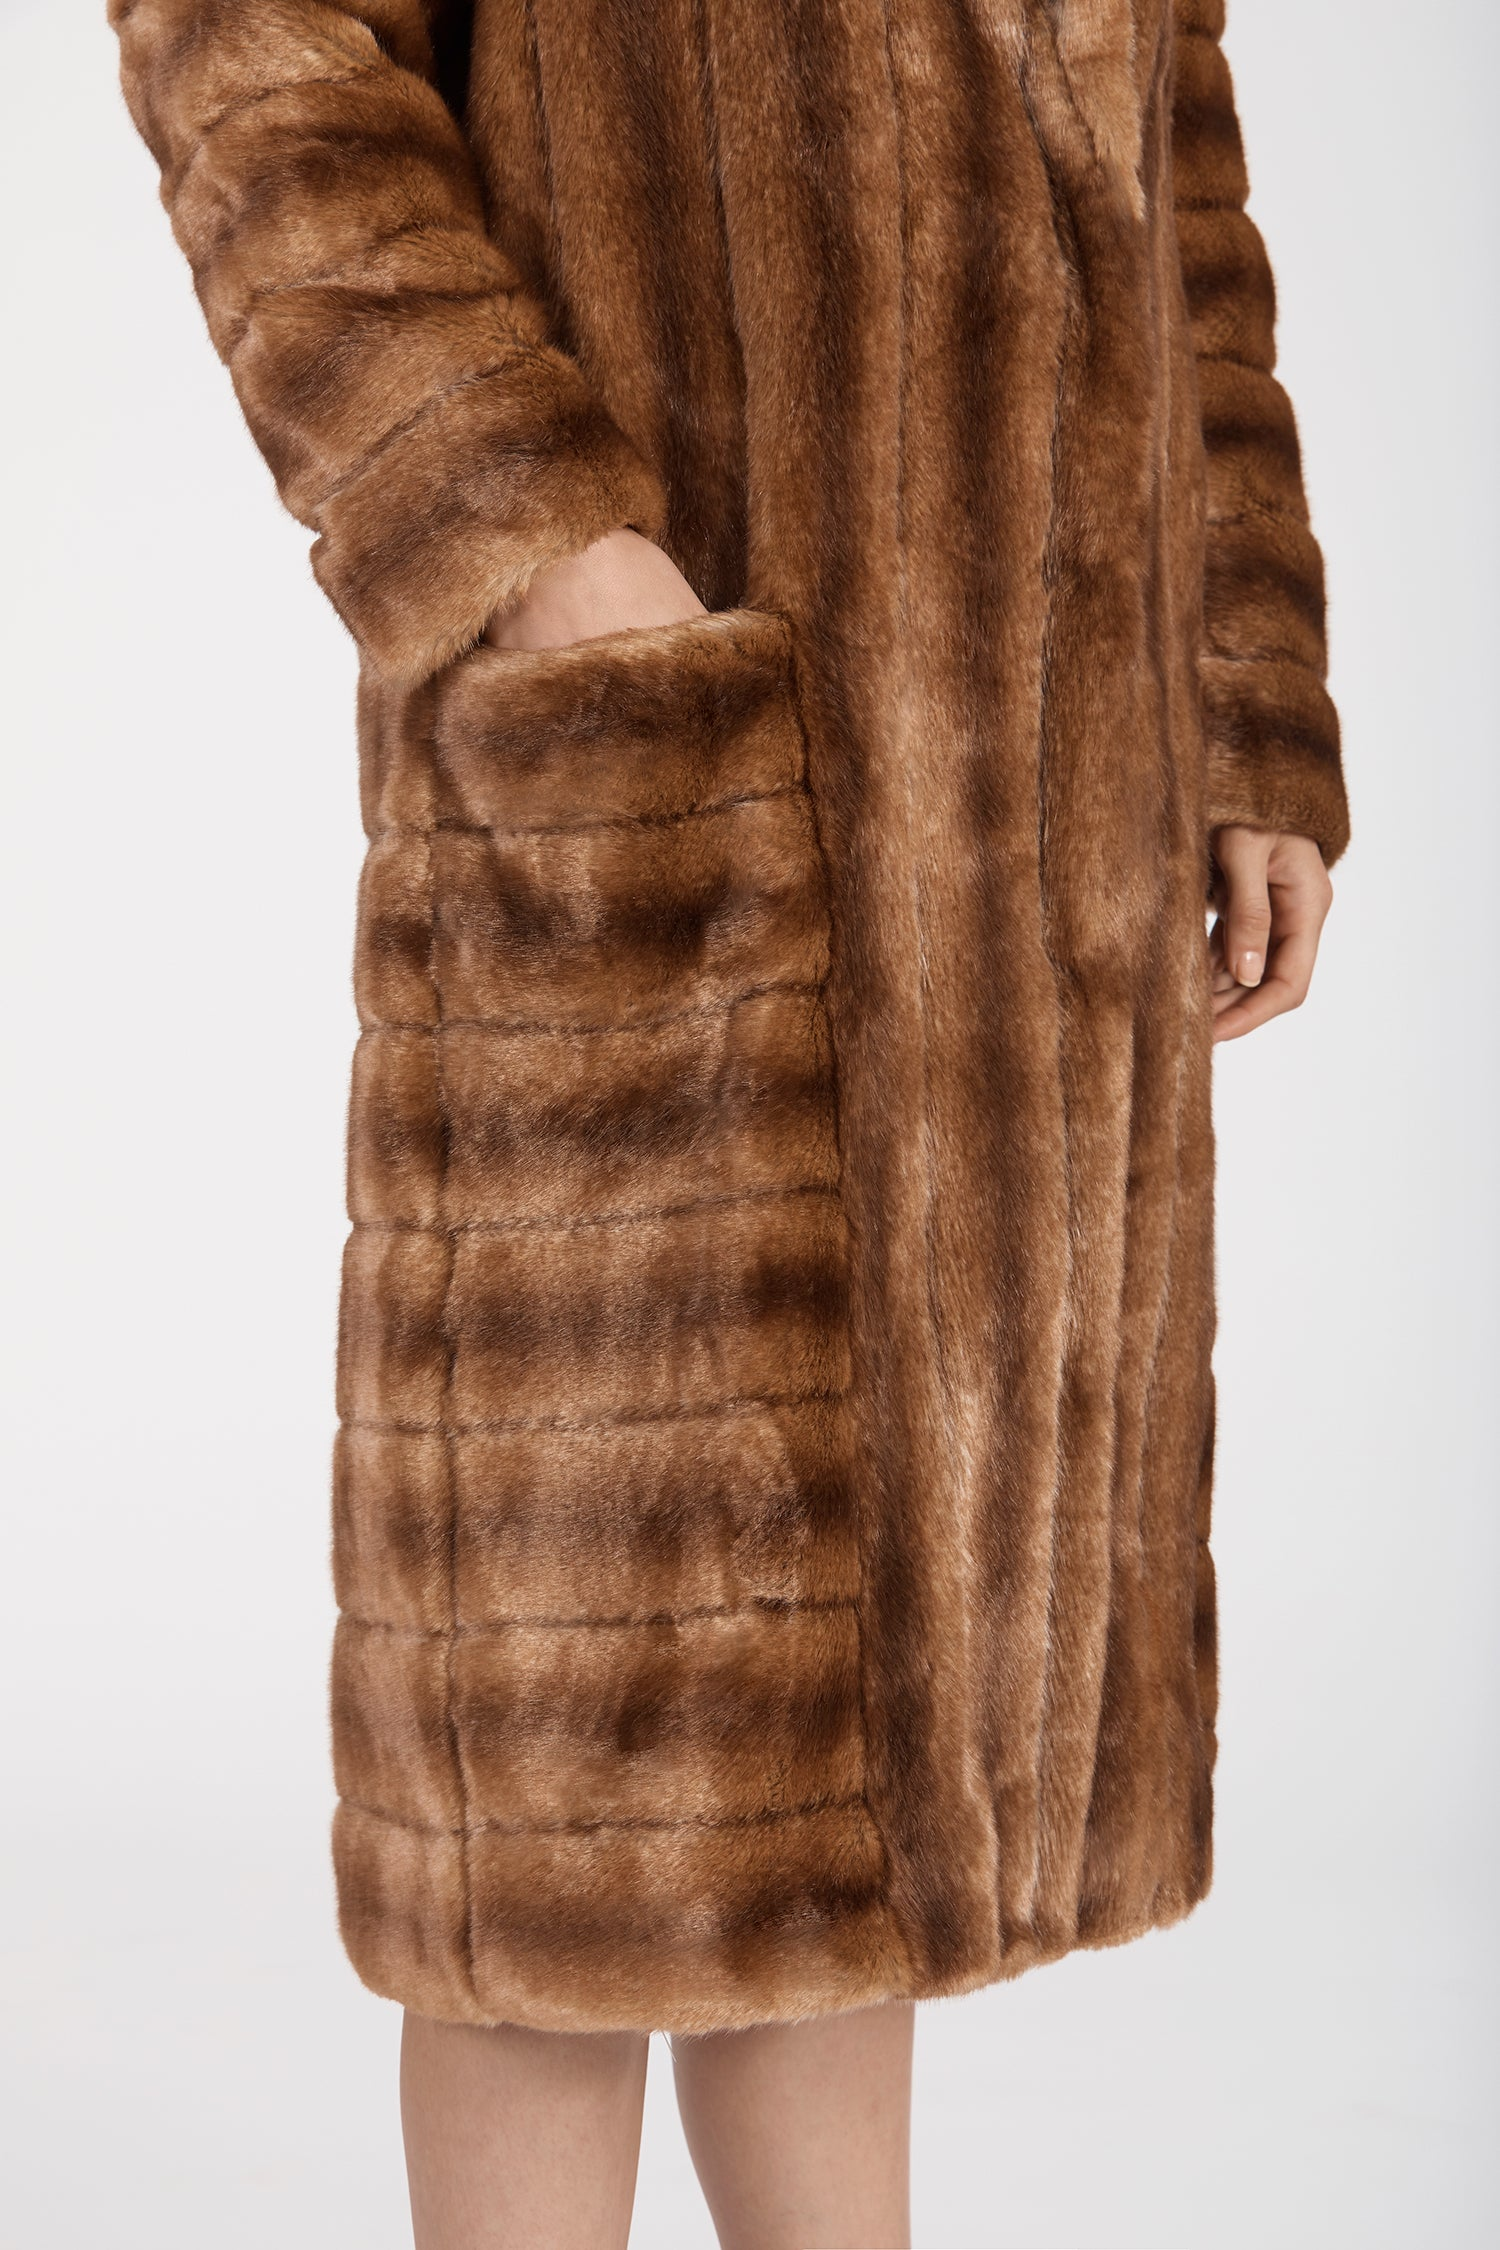 Marei1998's Timeless Echinacea Long Faux Fur Coat In Classic Brown Color. Featuring Oversized Silhouette And Wide Shawl Neckline. Investment Piece / Winter Essential. As Worn By The Model. Close Up View, Showing The Details. Resort 2020 Collection - Furless Friendship.